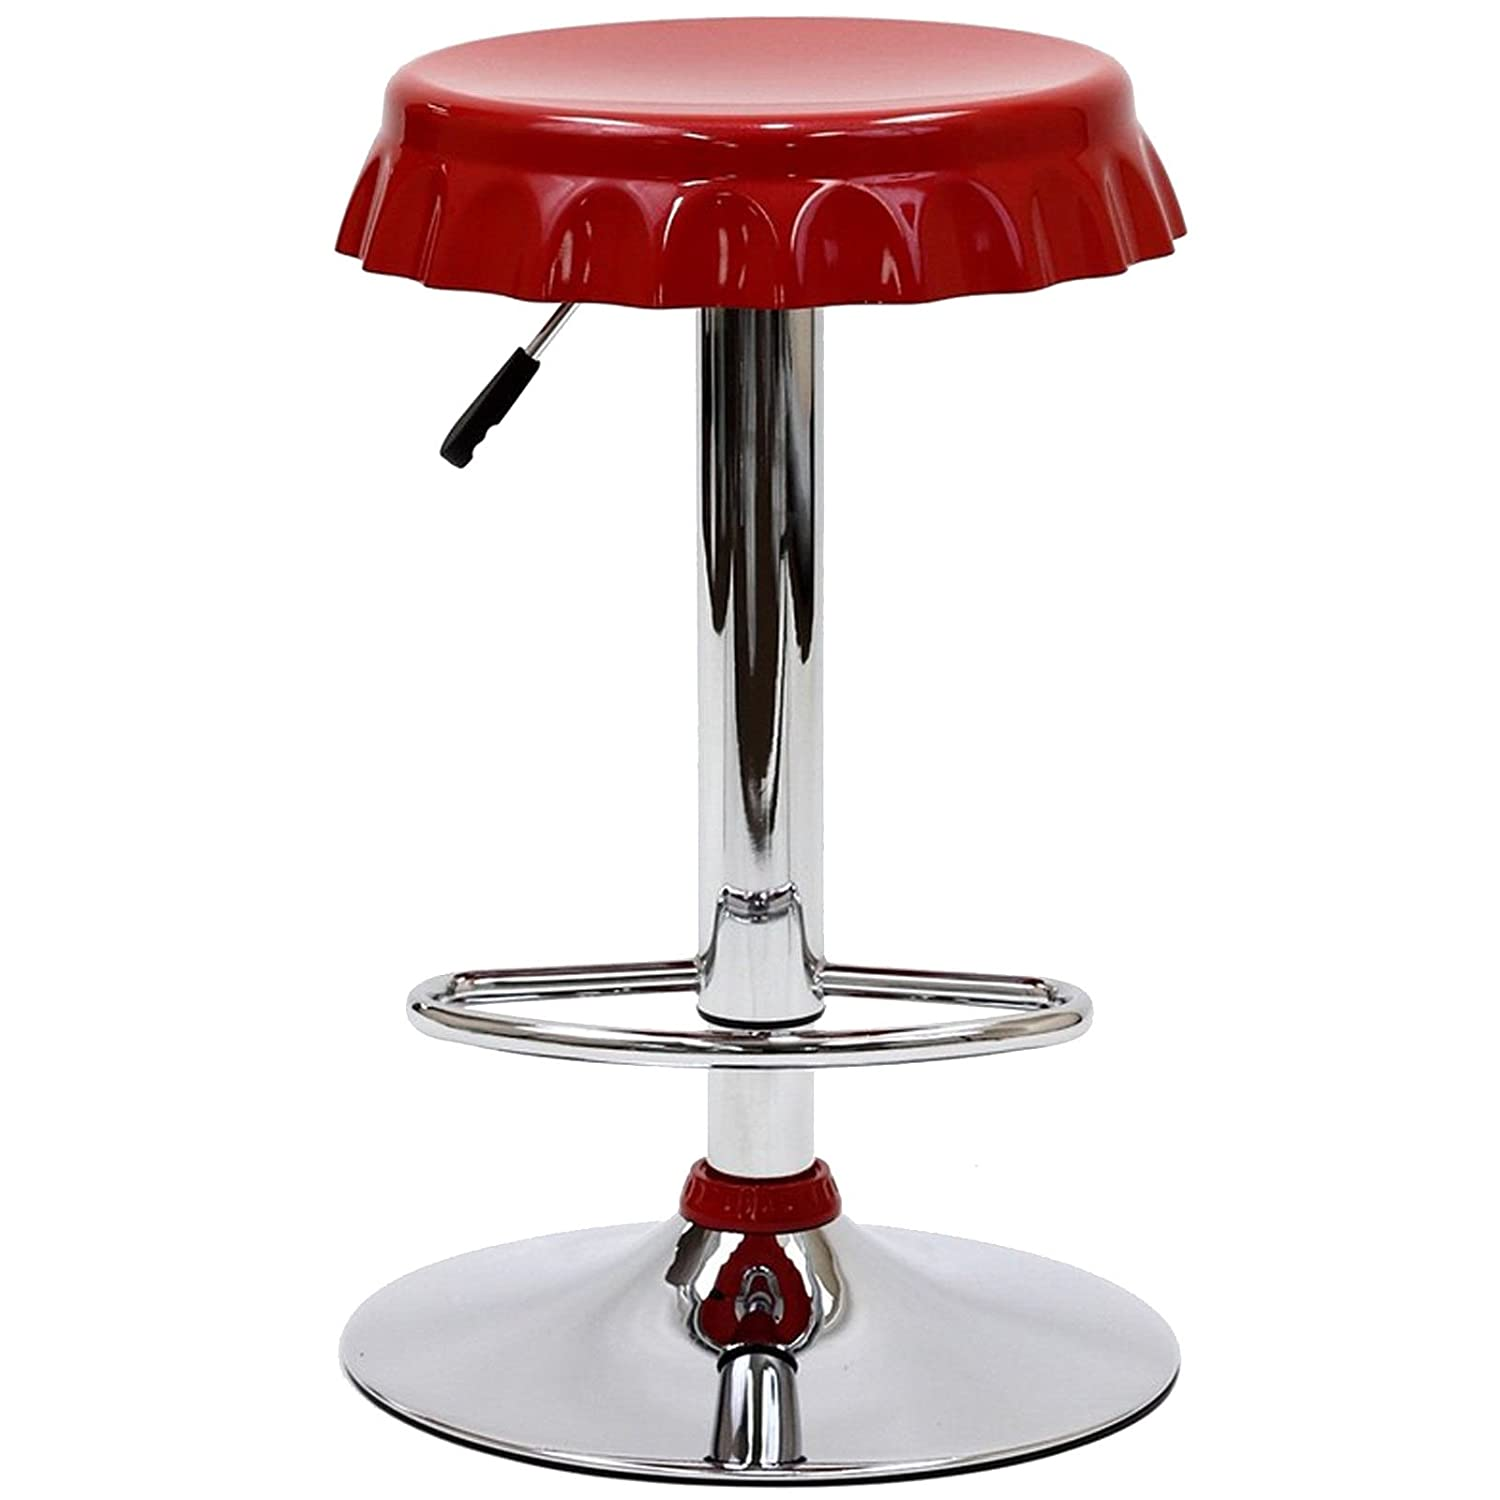 Amazon.com: Modway Soda Bottle Bar Stool in Red: Kitchen & Dining